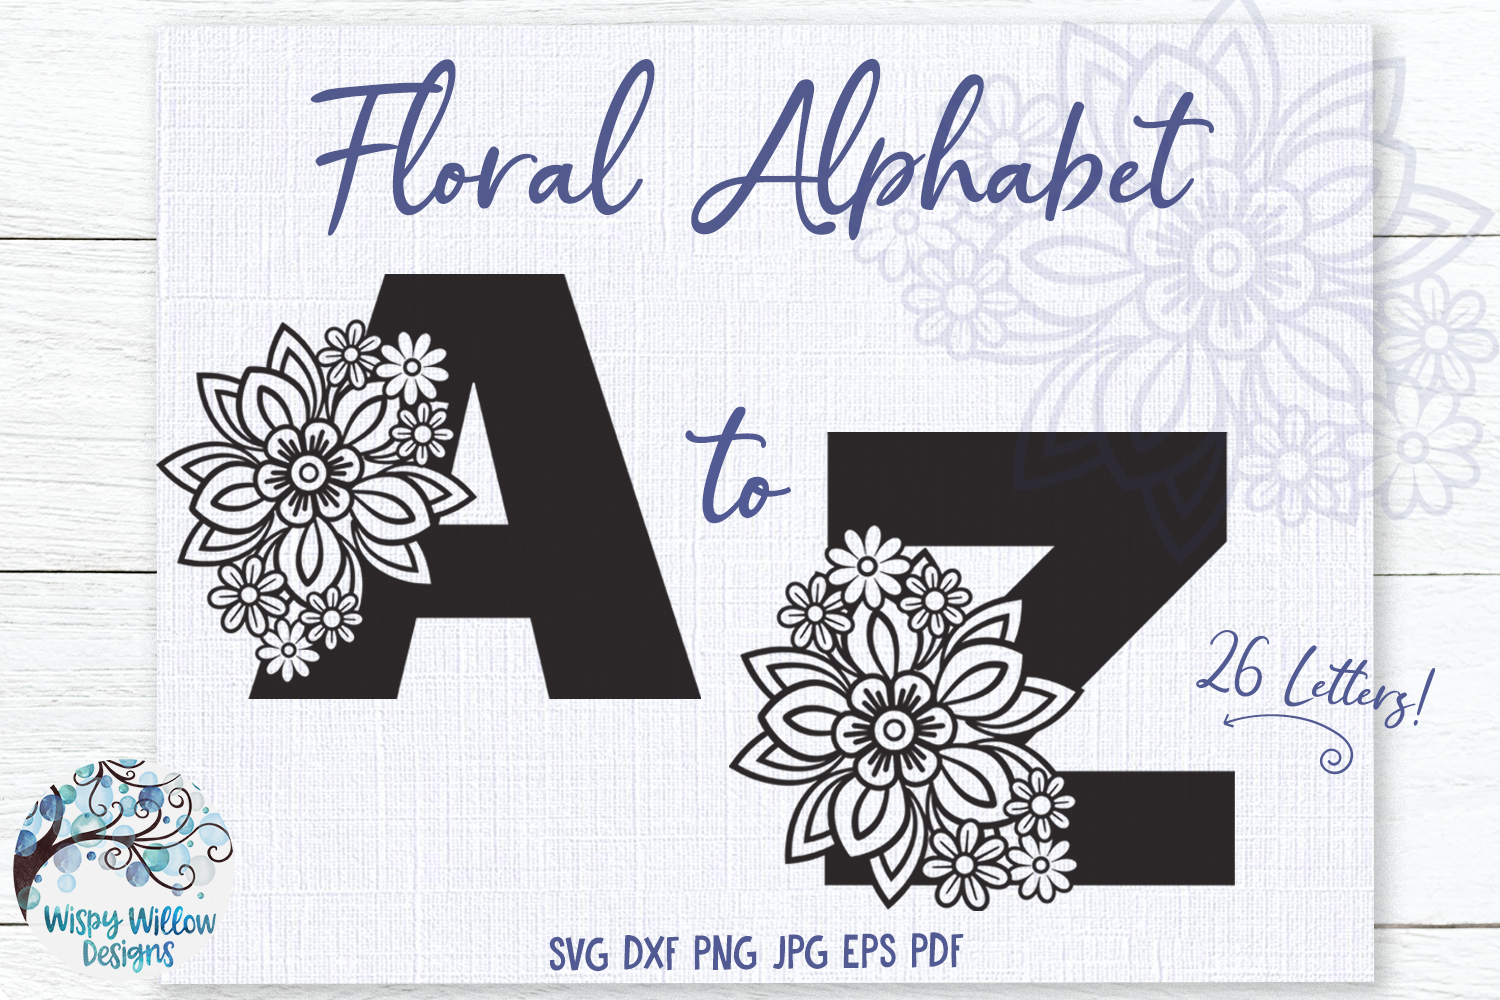 Floral Alphabet SVG Bundle | A to Z Floral Letters SVG example image 1